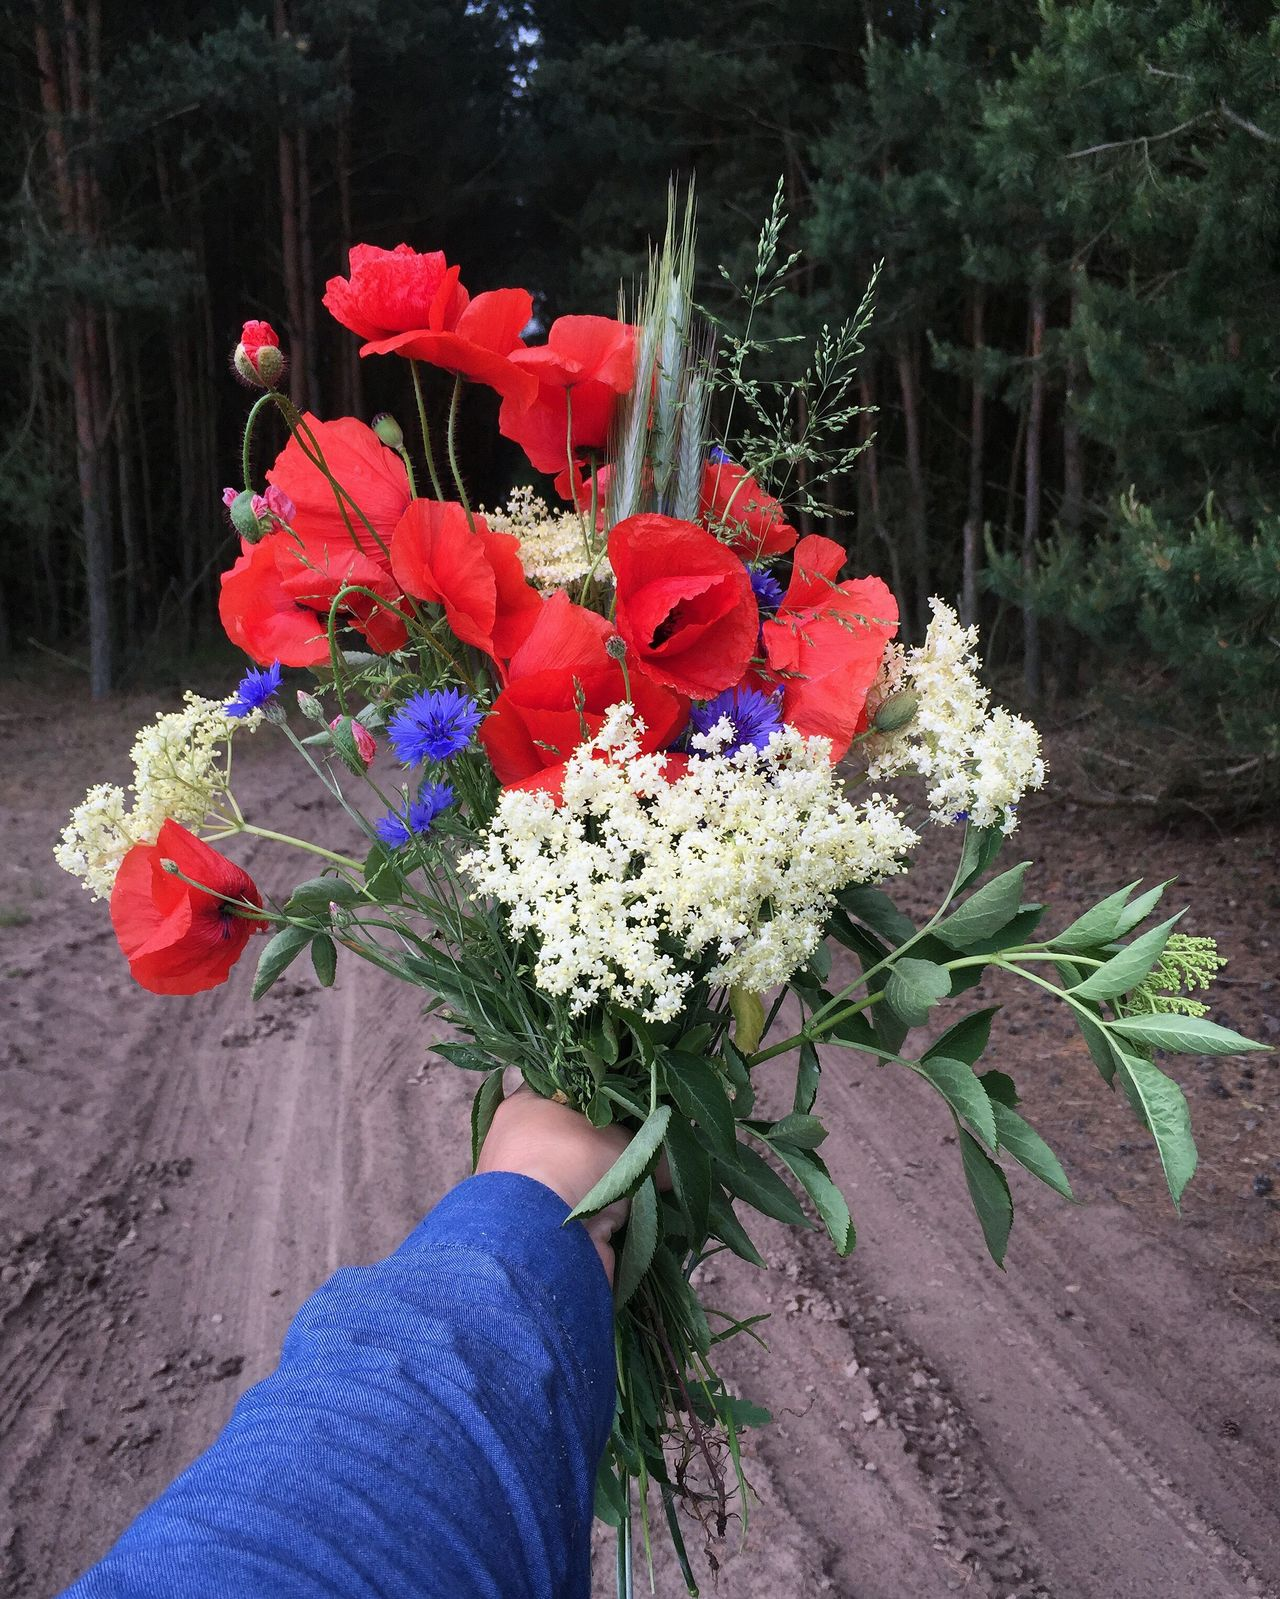 Flowers for you Flower Human Body Part Human Hand Nature Holding Real People Freshness Fragility Day Outdoors Bouquet One Person Plant Flower Head Beauty In Nature Close-up People Poppy Flowers Corn Flowers Holunder Happy Present Backgrounds Holiday Vacations